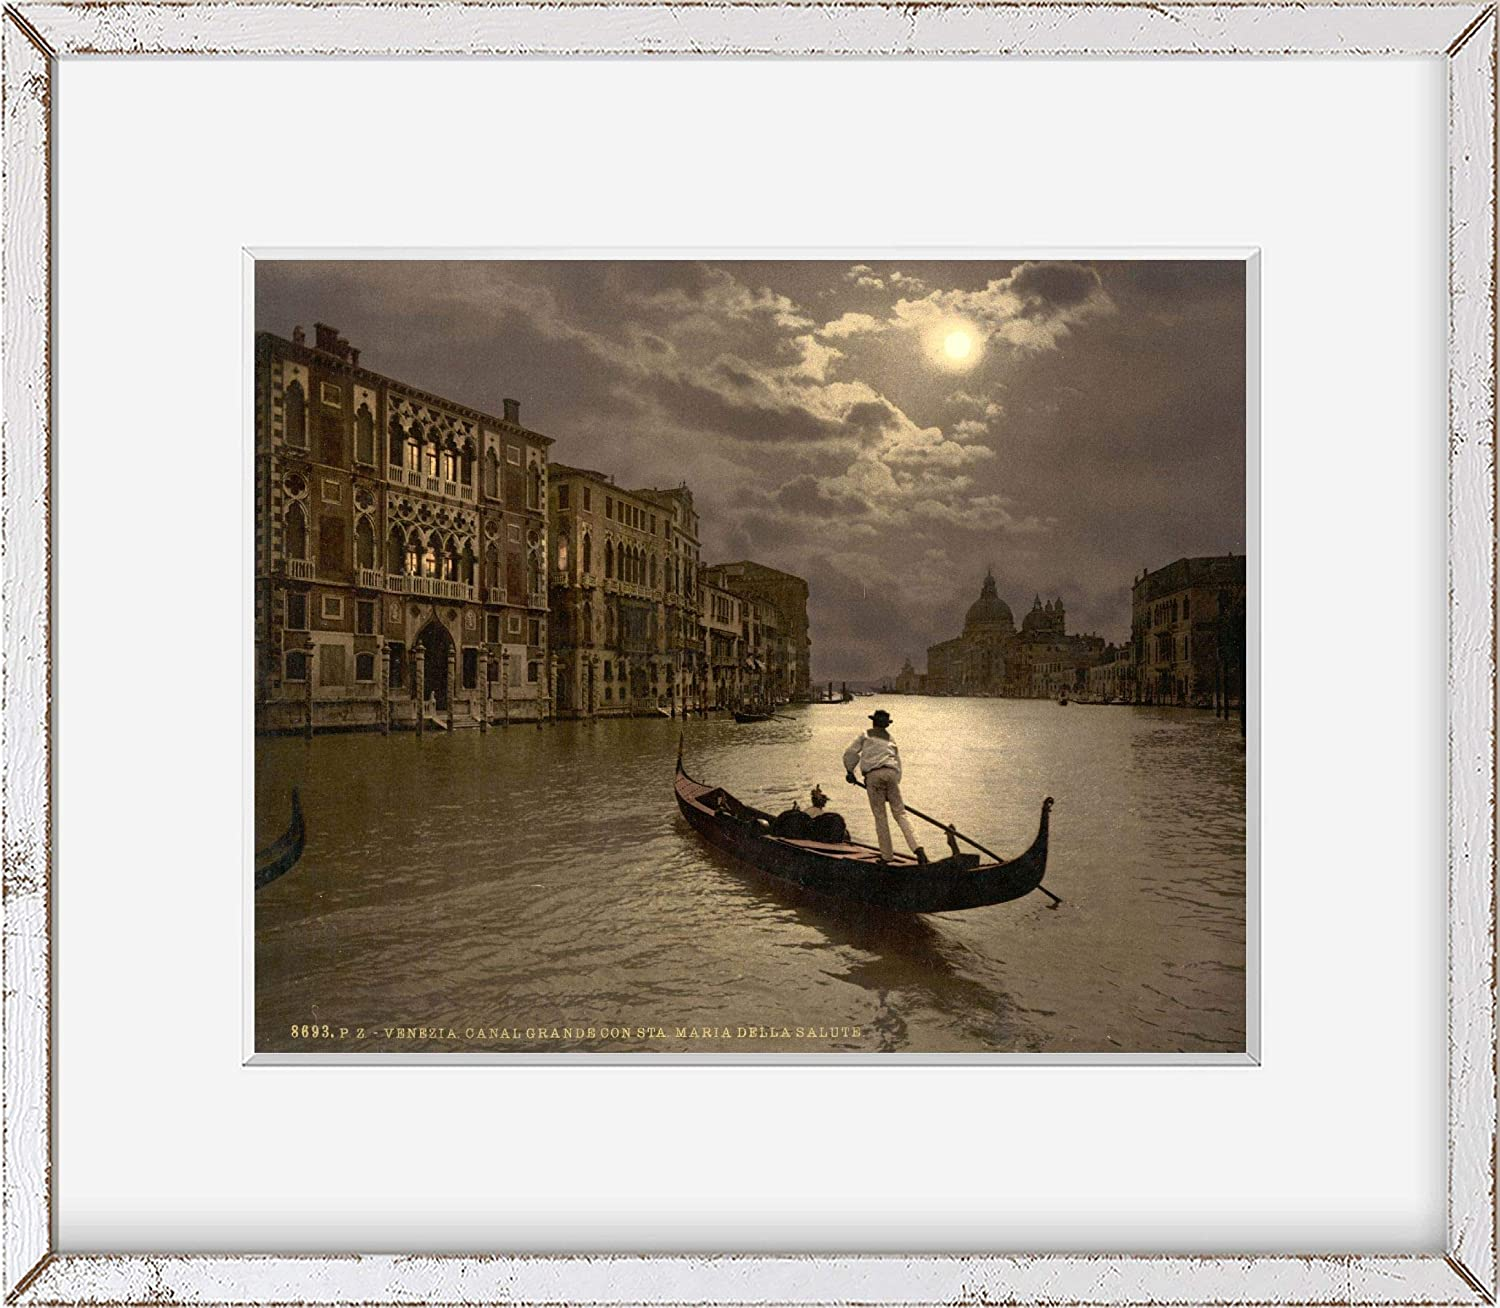 Italy 1890s photochrom also called the Ac process Venice Grand ...